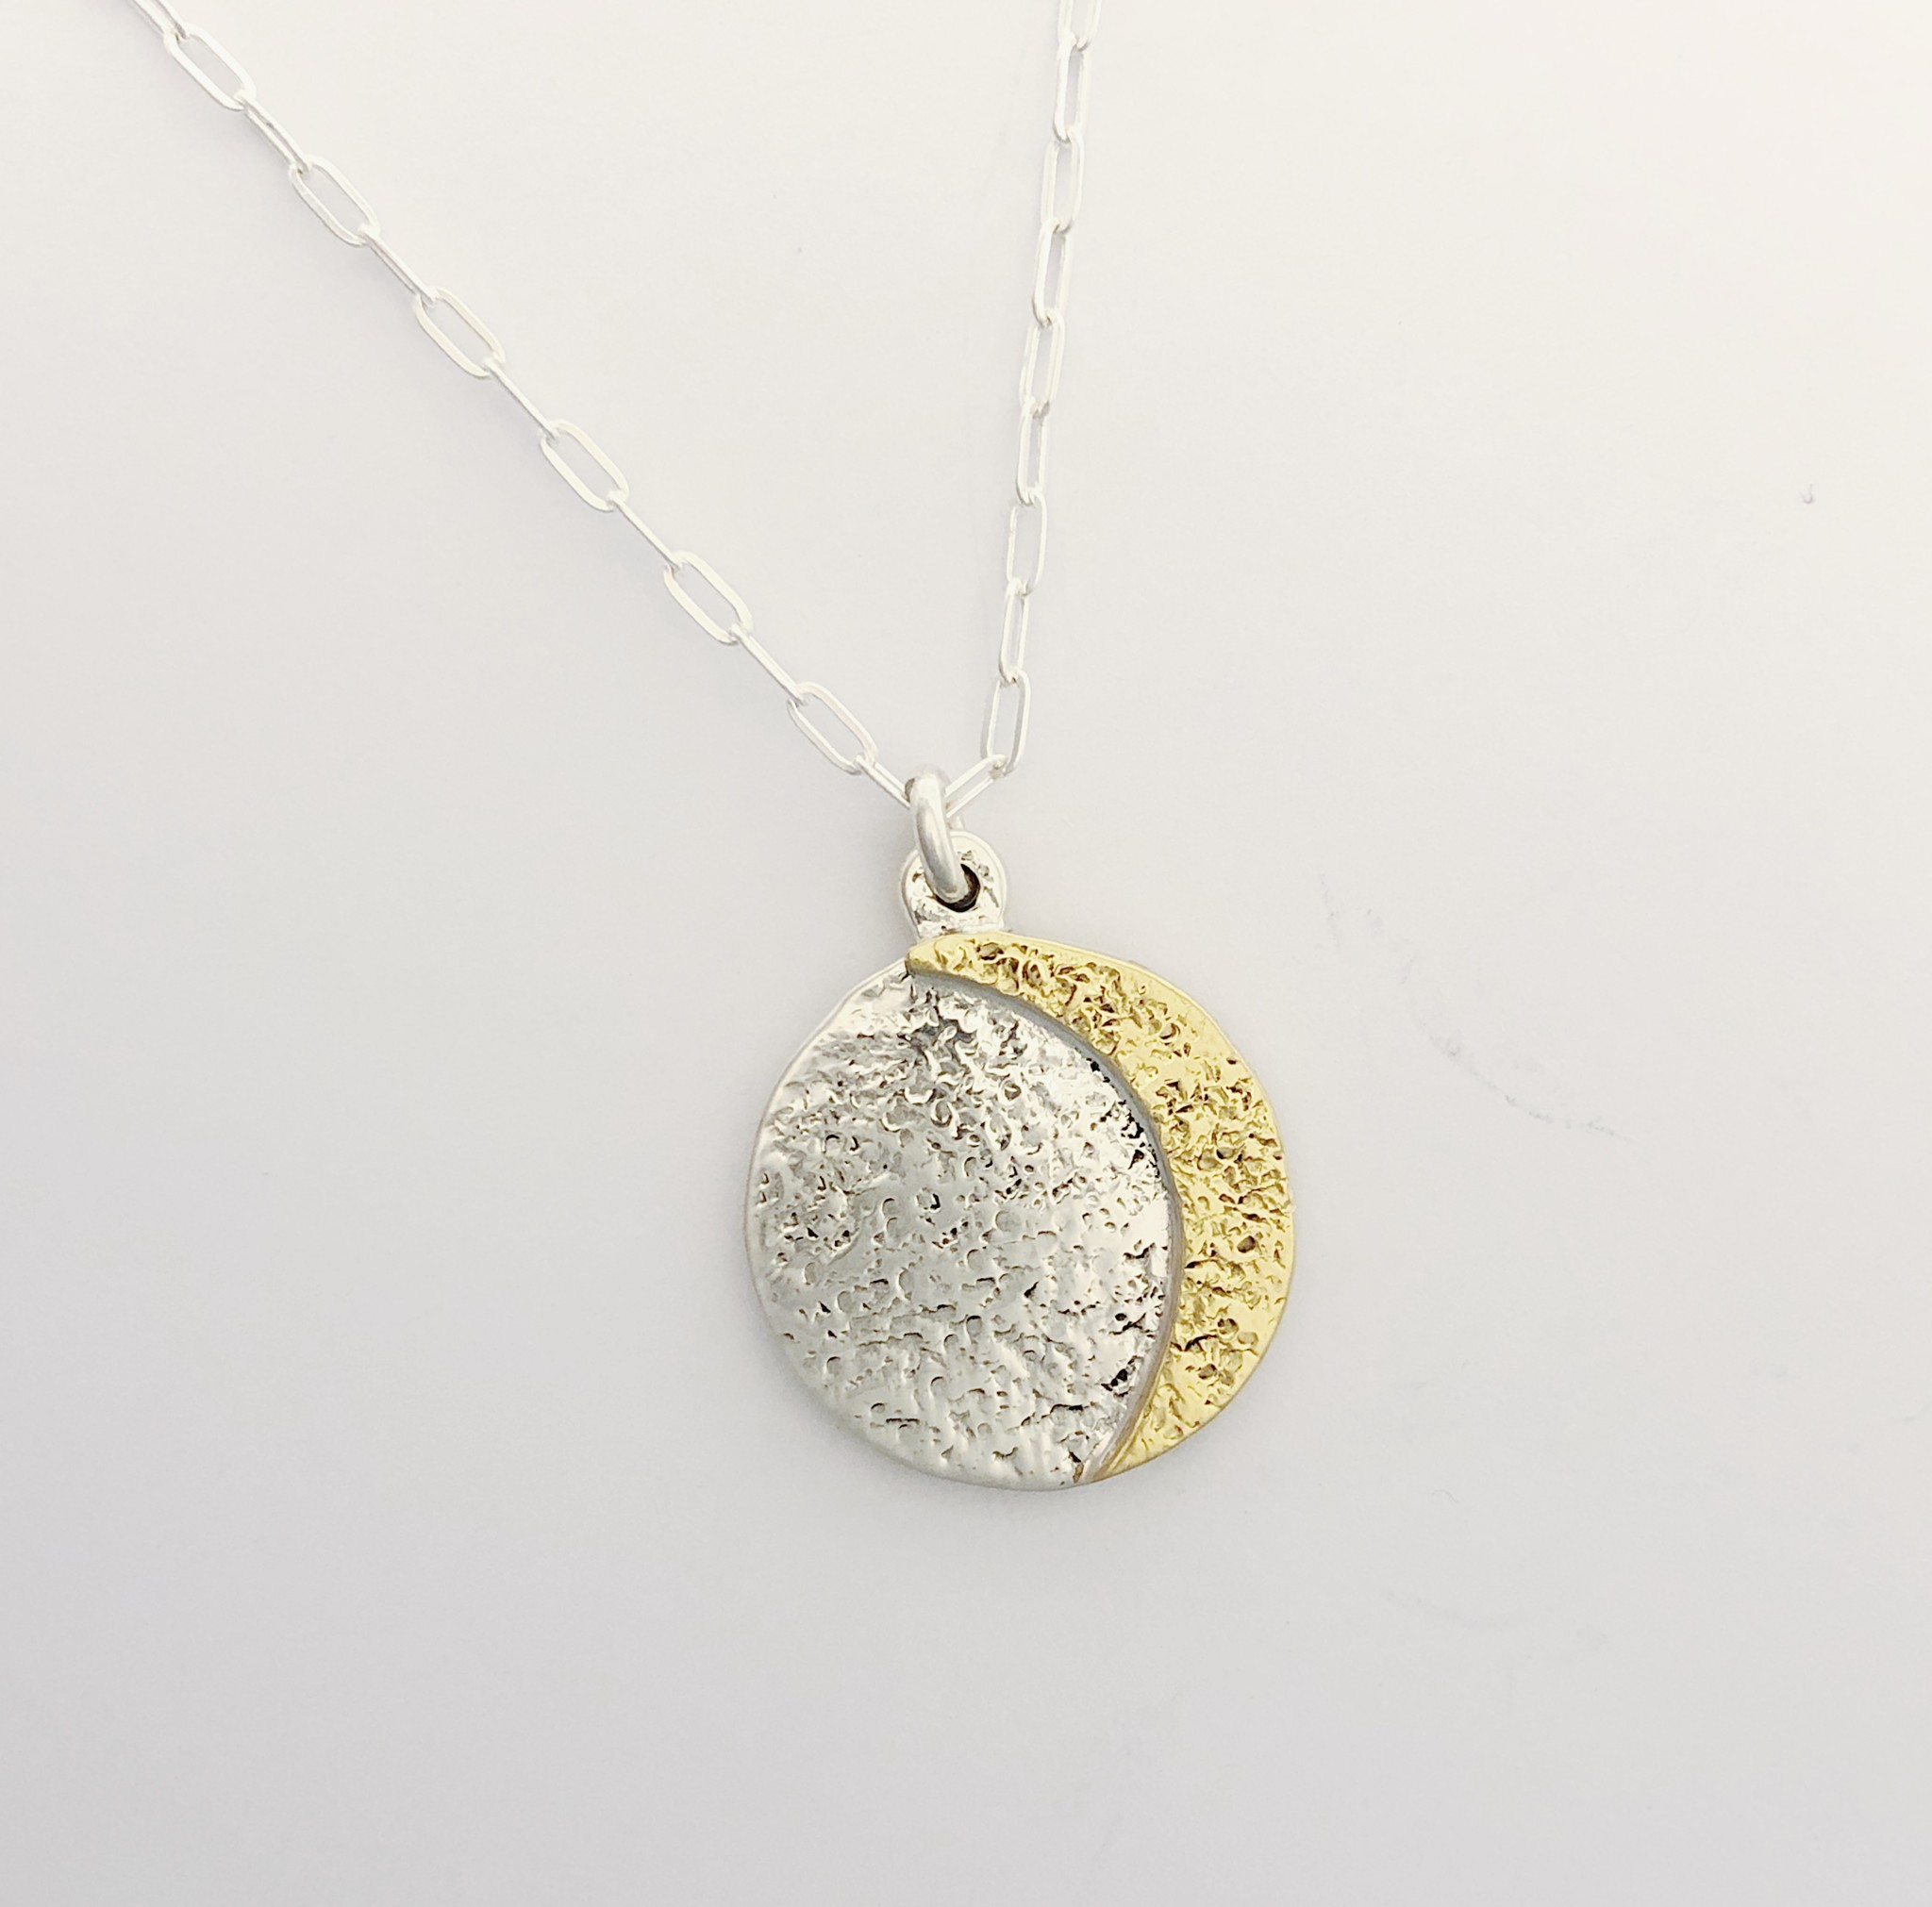 Lissa Bowie Moon Phase Necklace (Reversible)